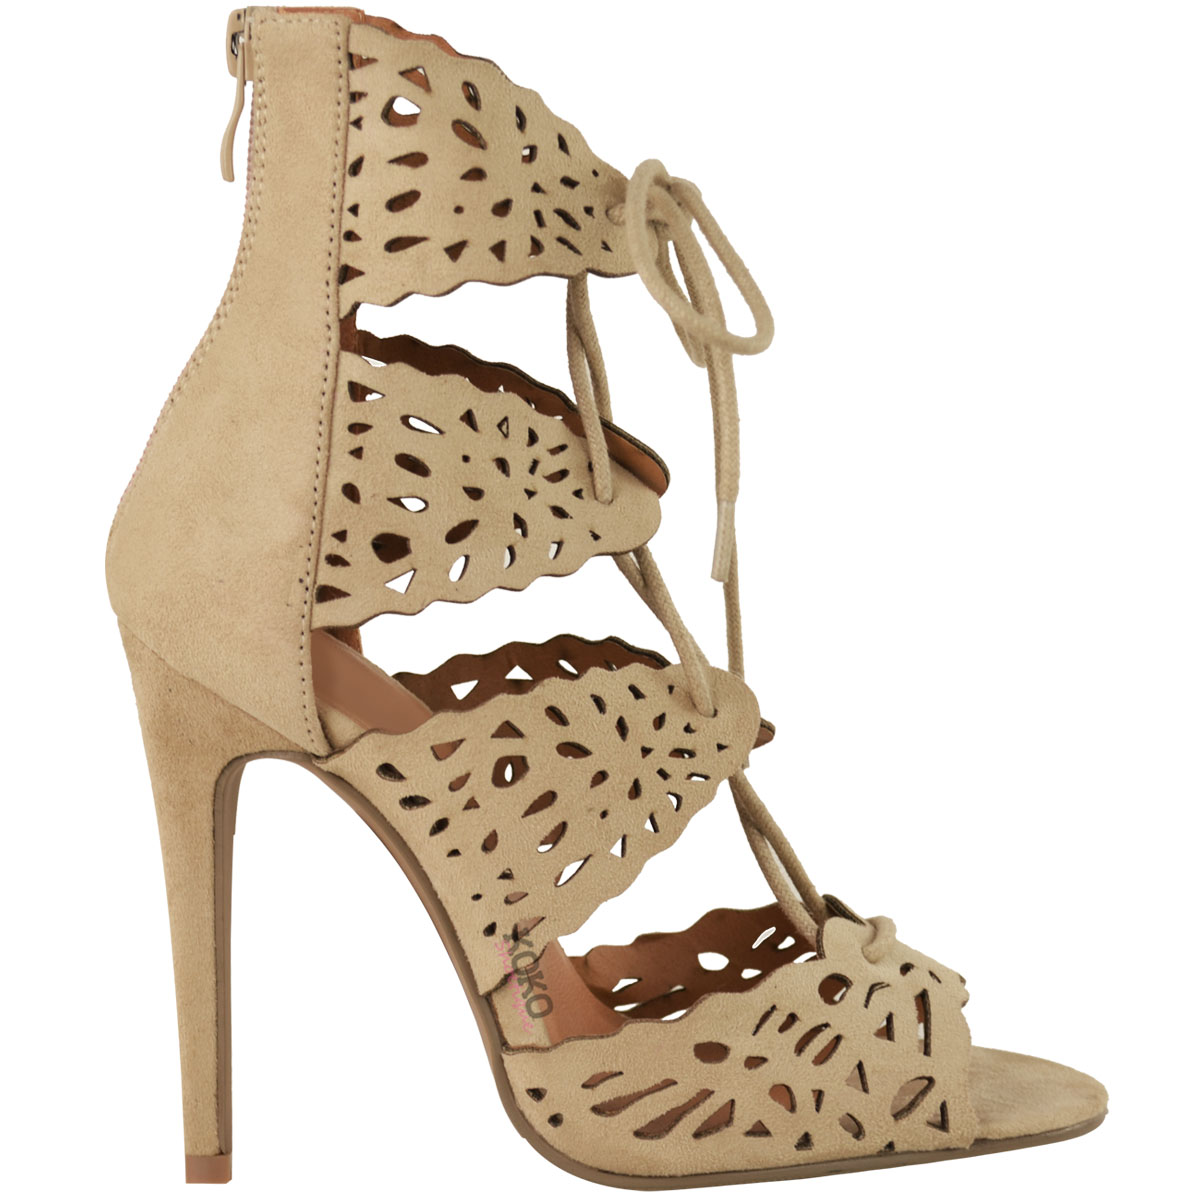 new high heel sandals womens lace up chic